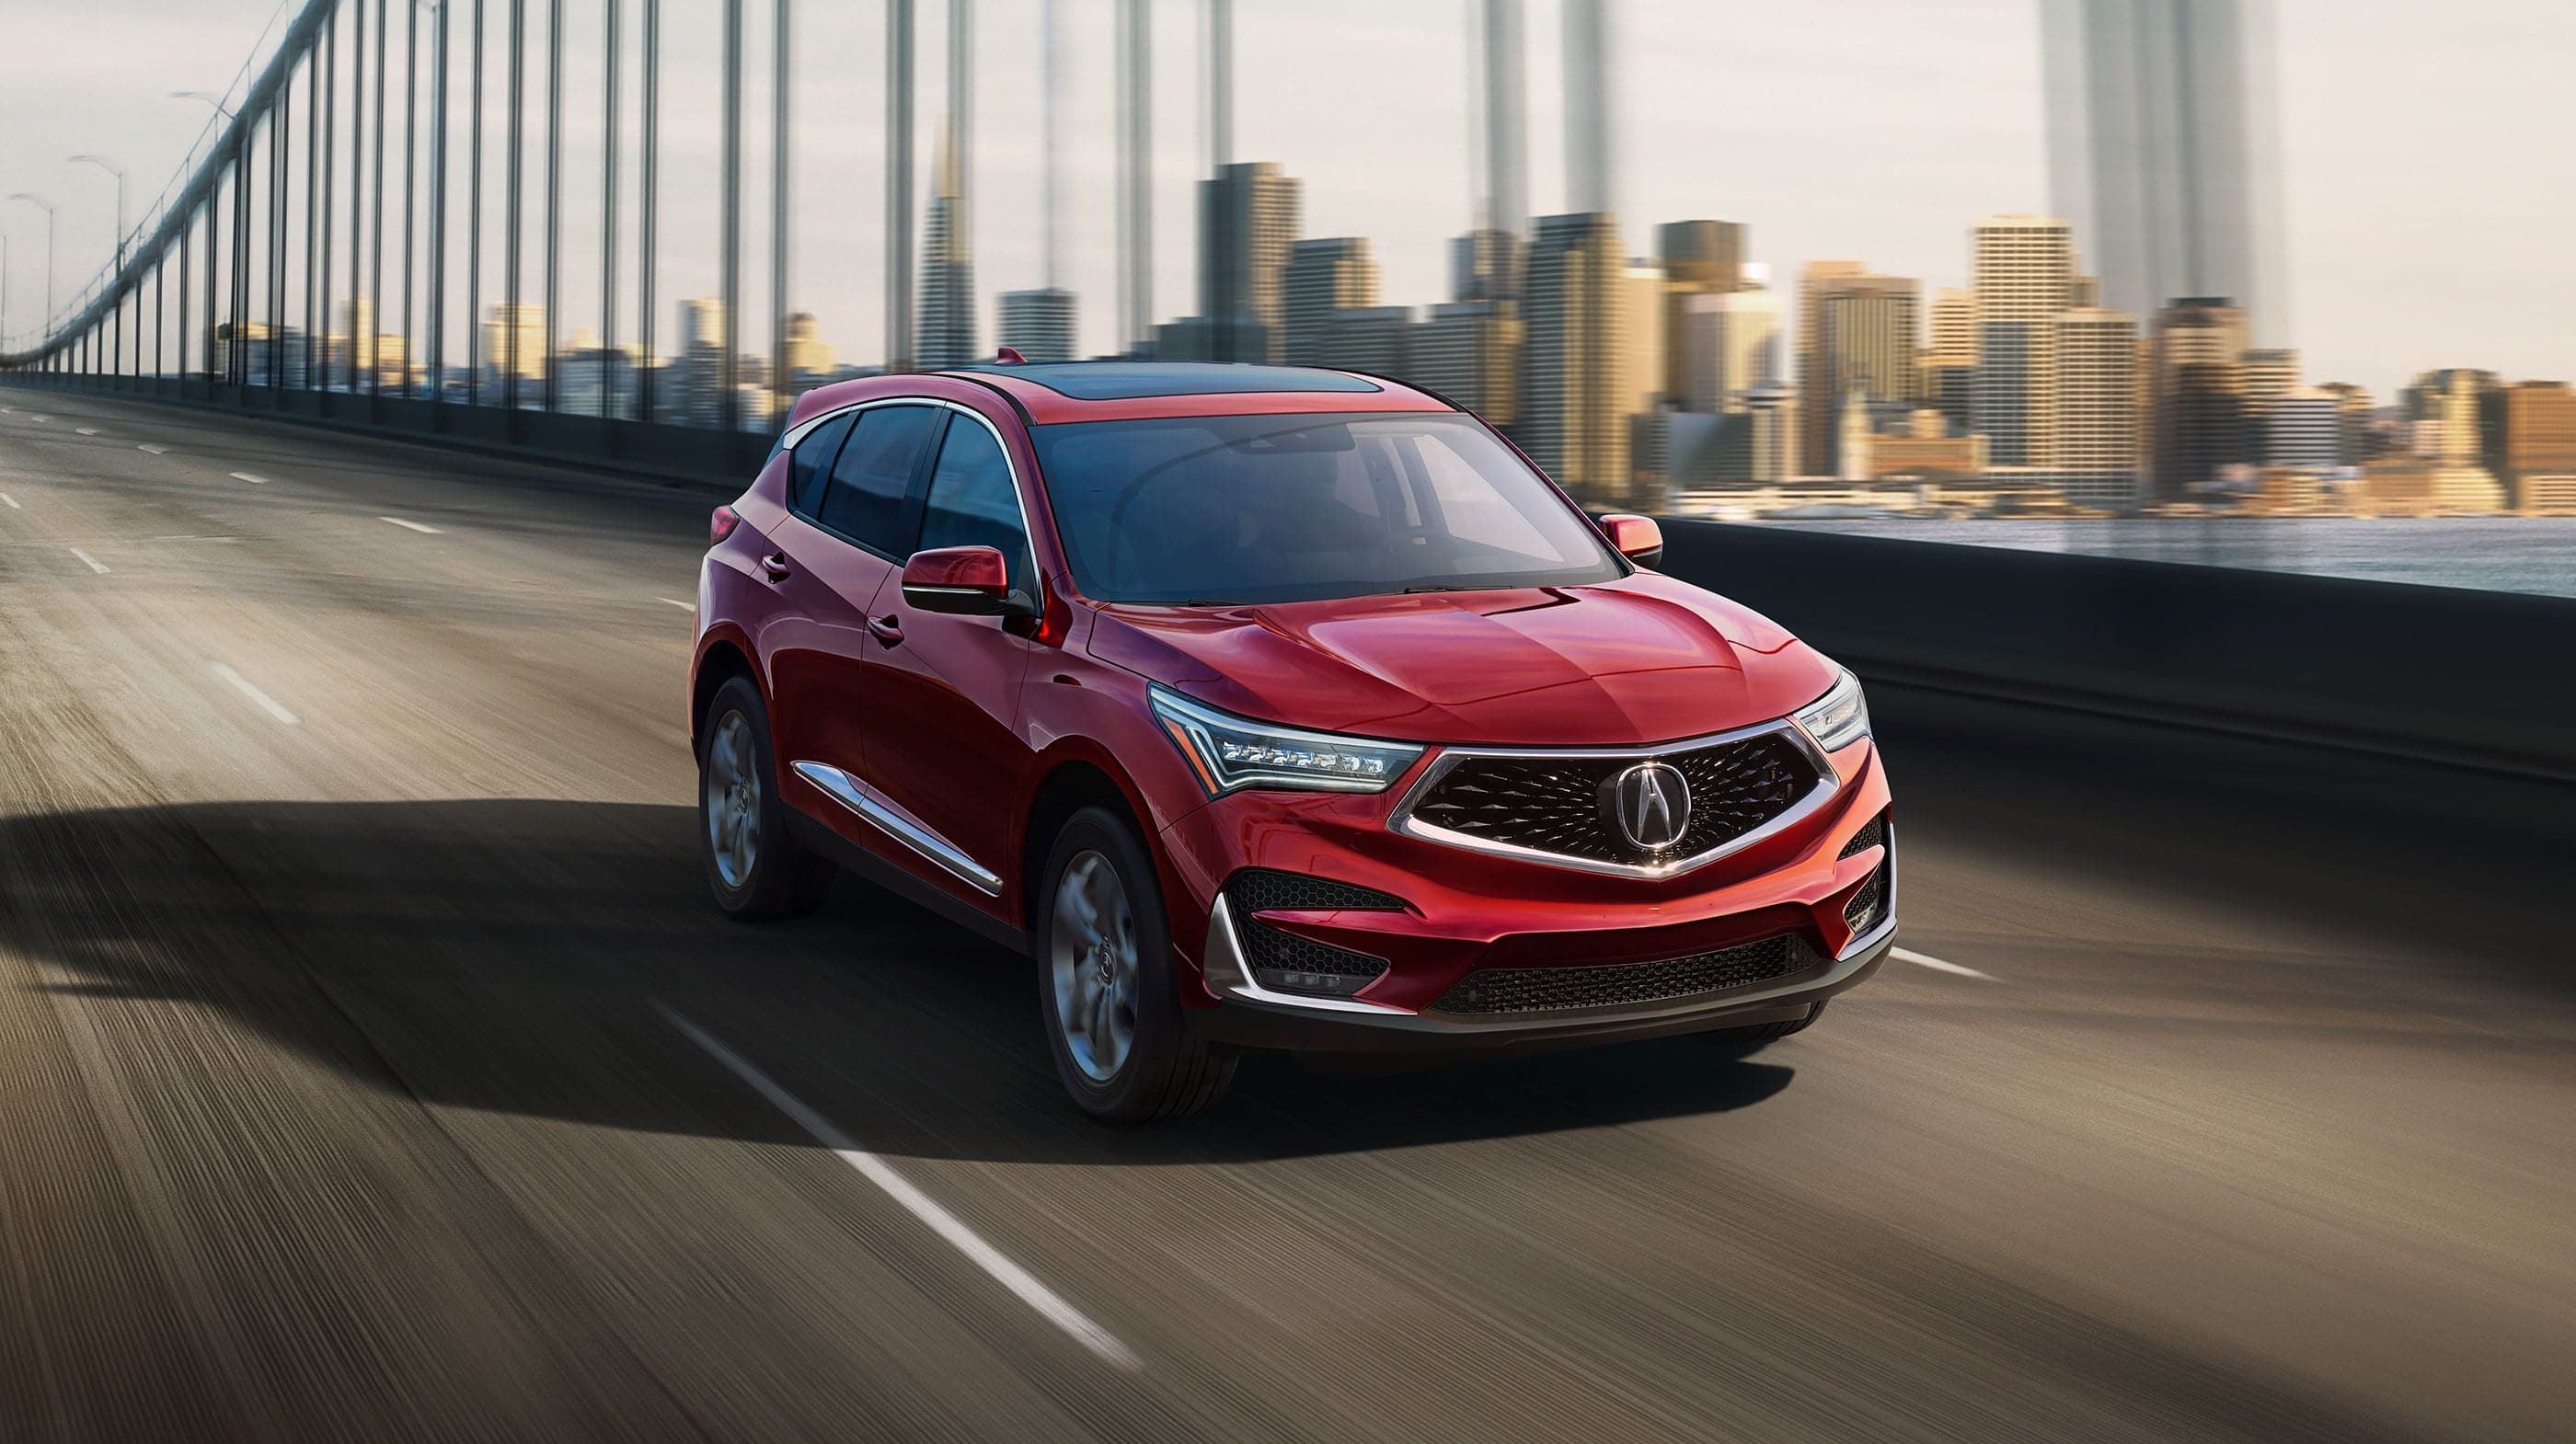 2020 Acura Rdx Leasing Near Chicago Il